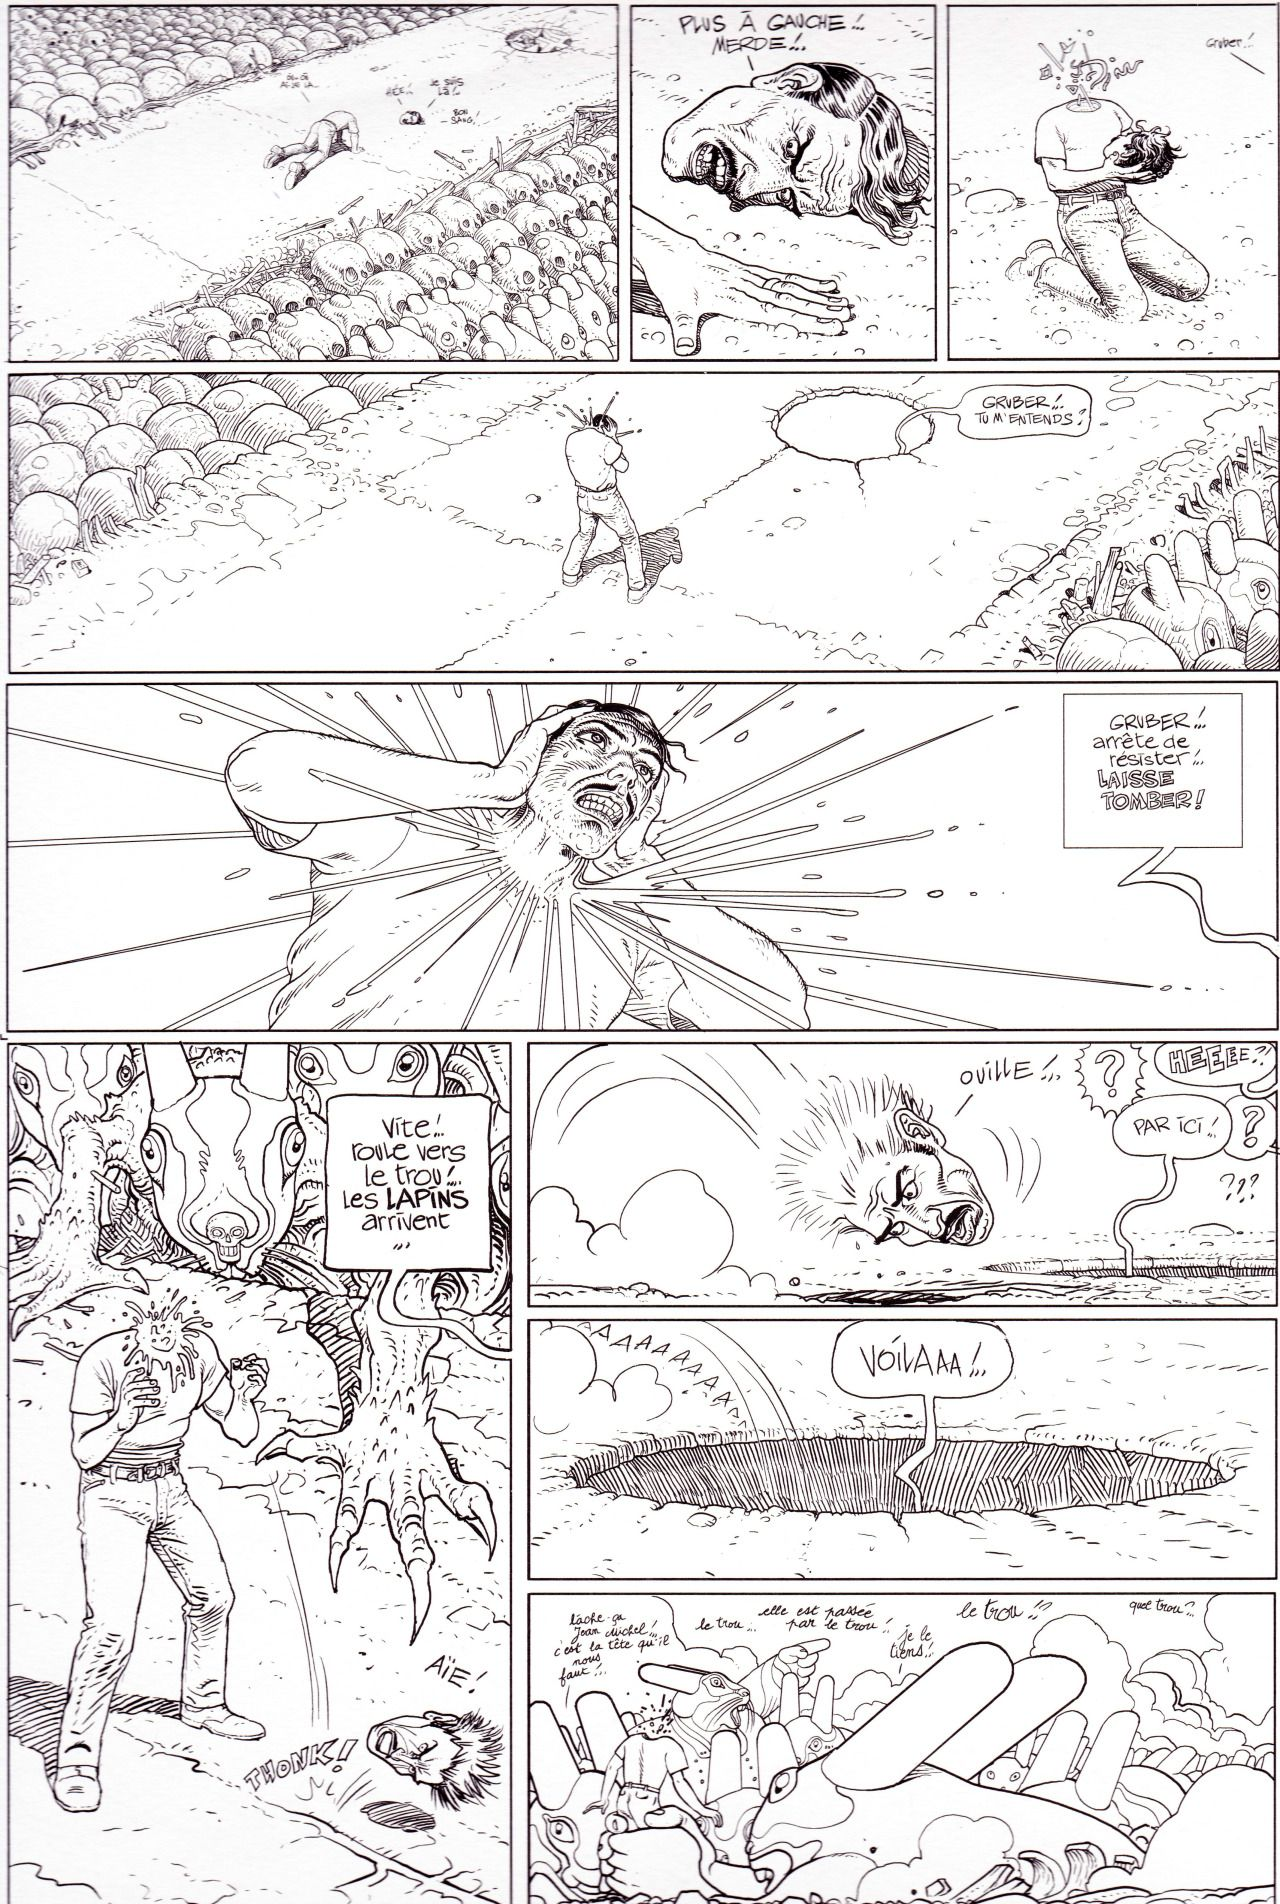 """""""Gruber! Do you hear me?… Gruber! Stop resisting!… GIVE UP!… Hurry! Roll to the hole! The rabbits are coming!…"""" Moebius - From """"Le Chasseur déprime"""" Stardom Editions, Paris 2008"""